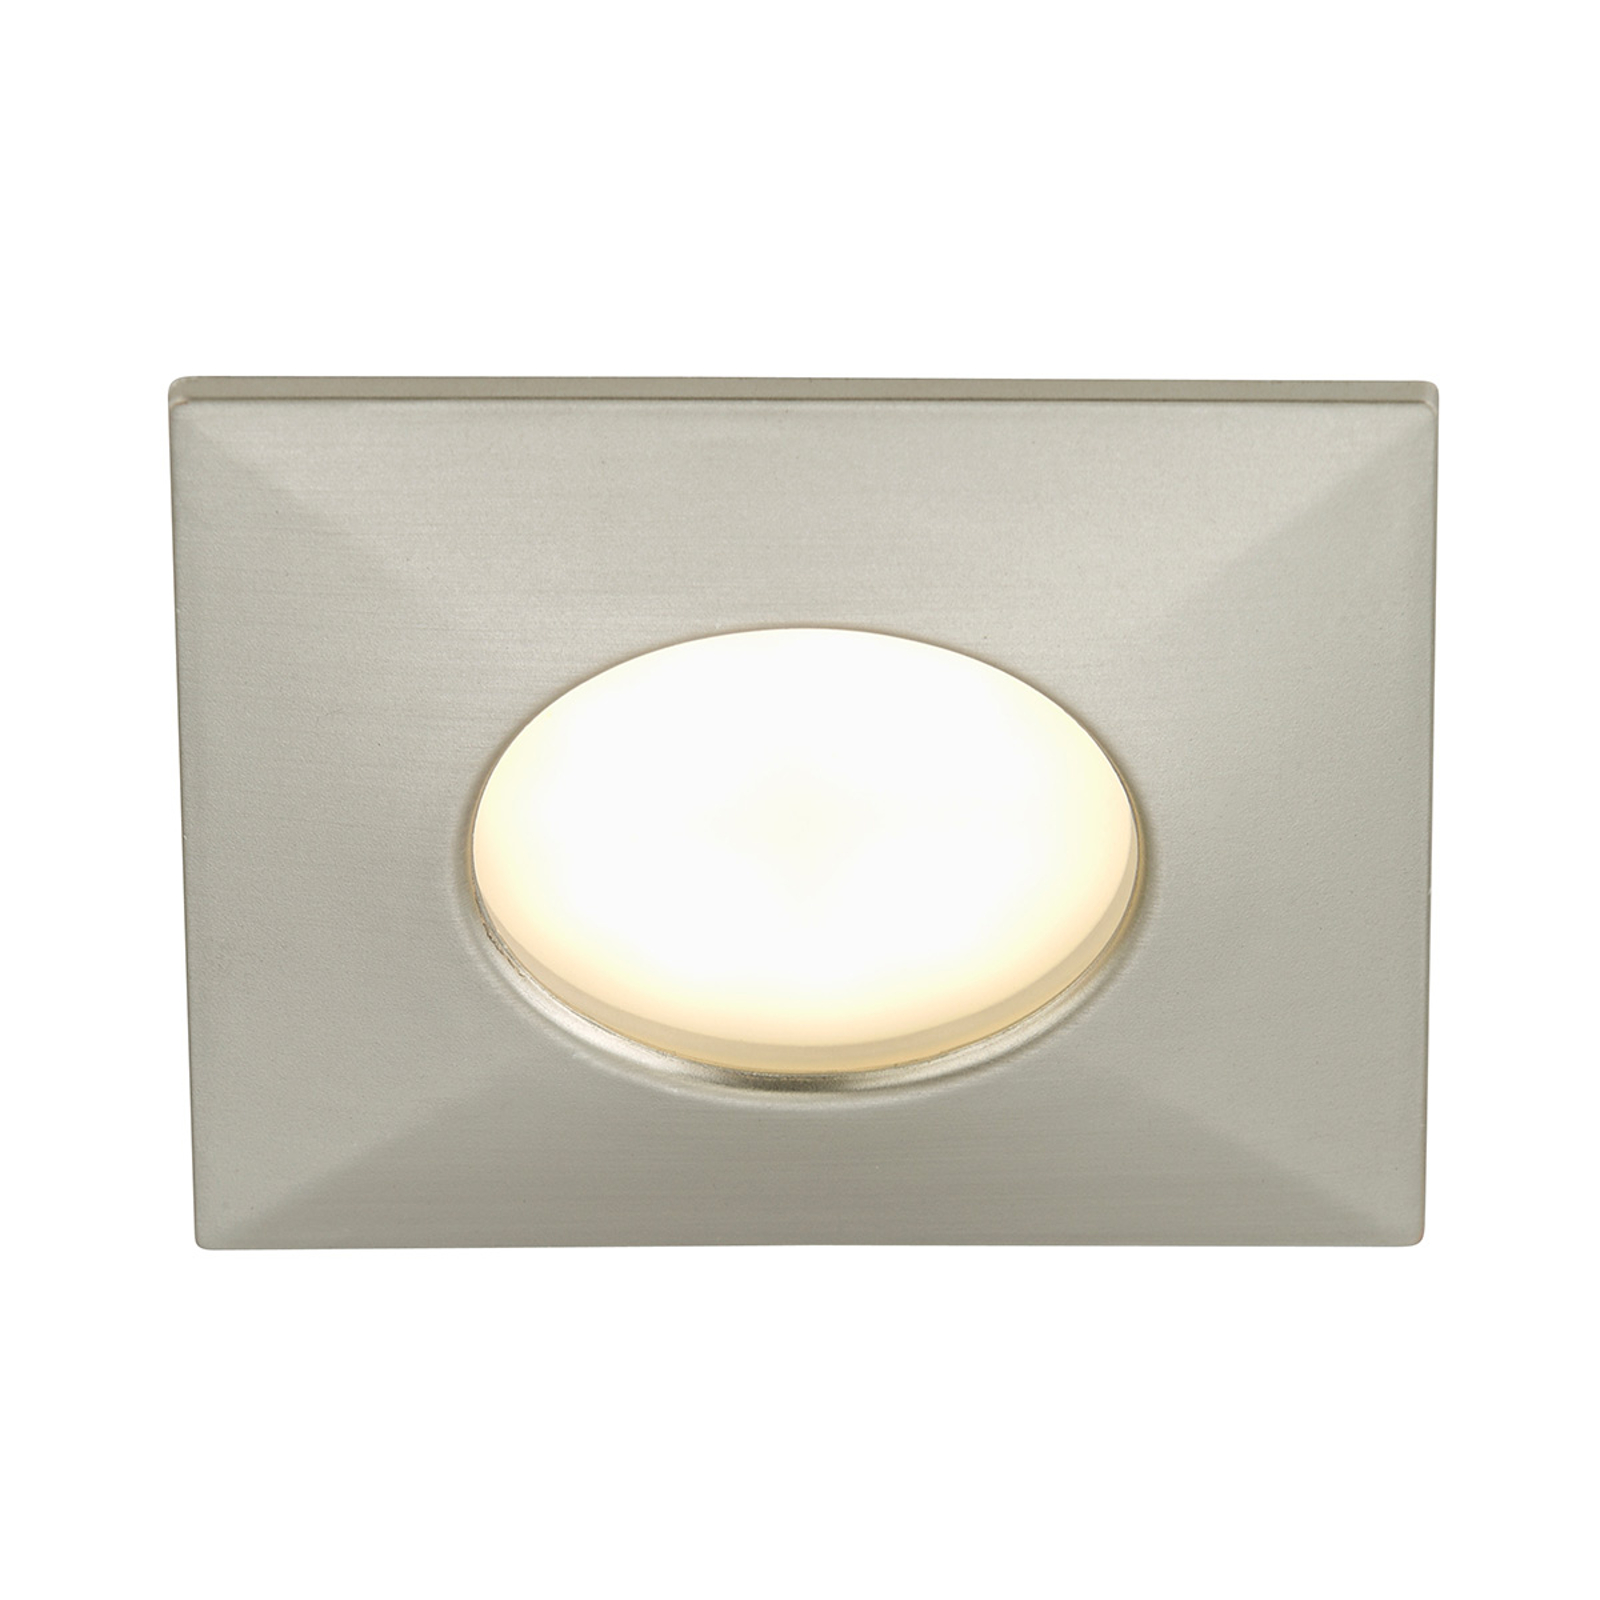 Luca LED recessed light IP44_1510233_1